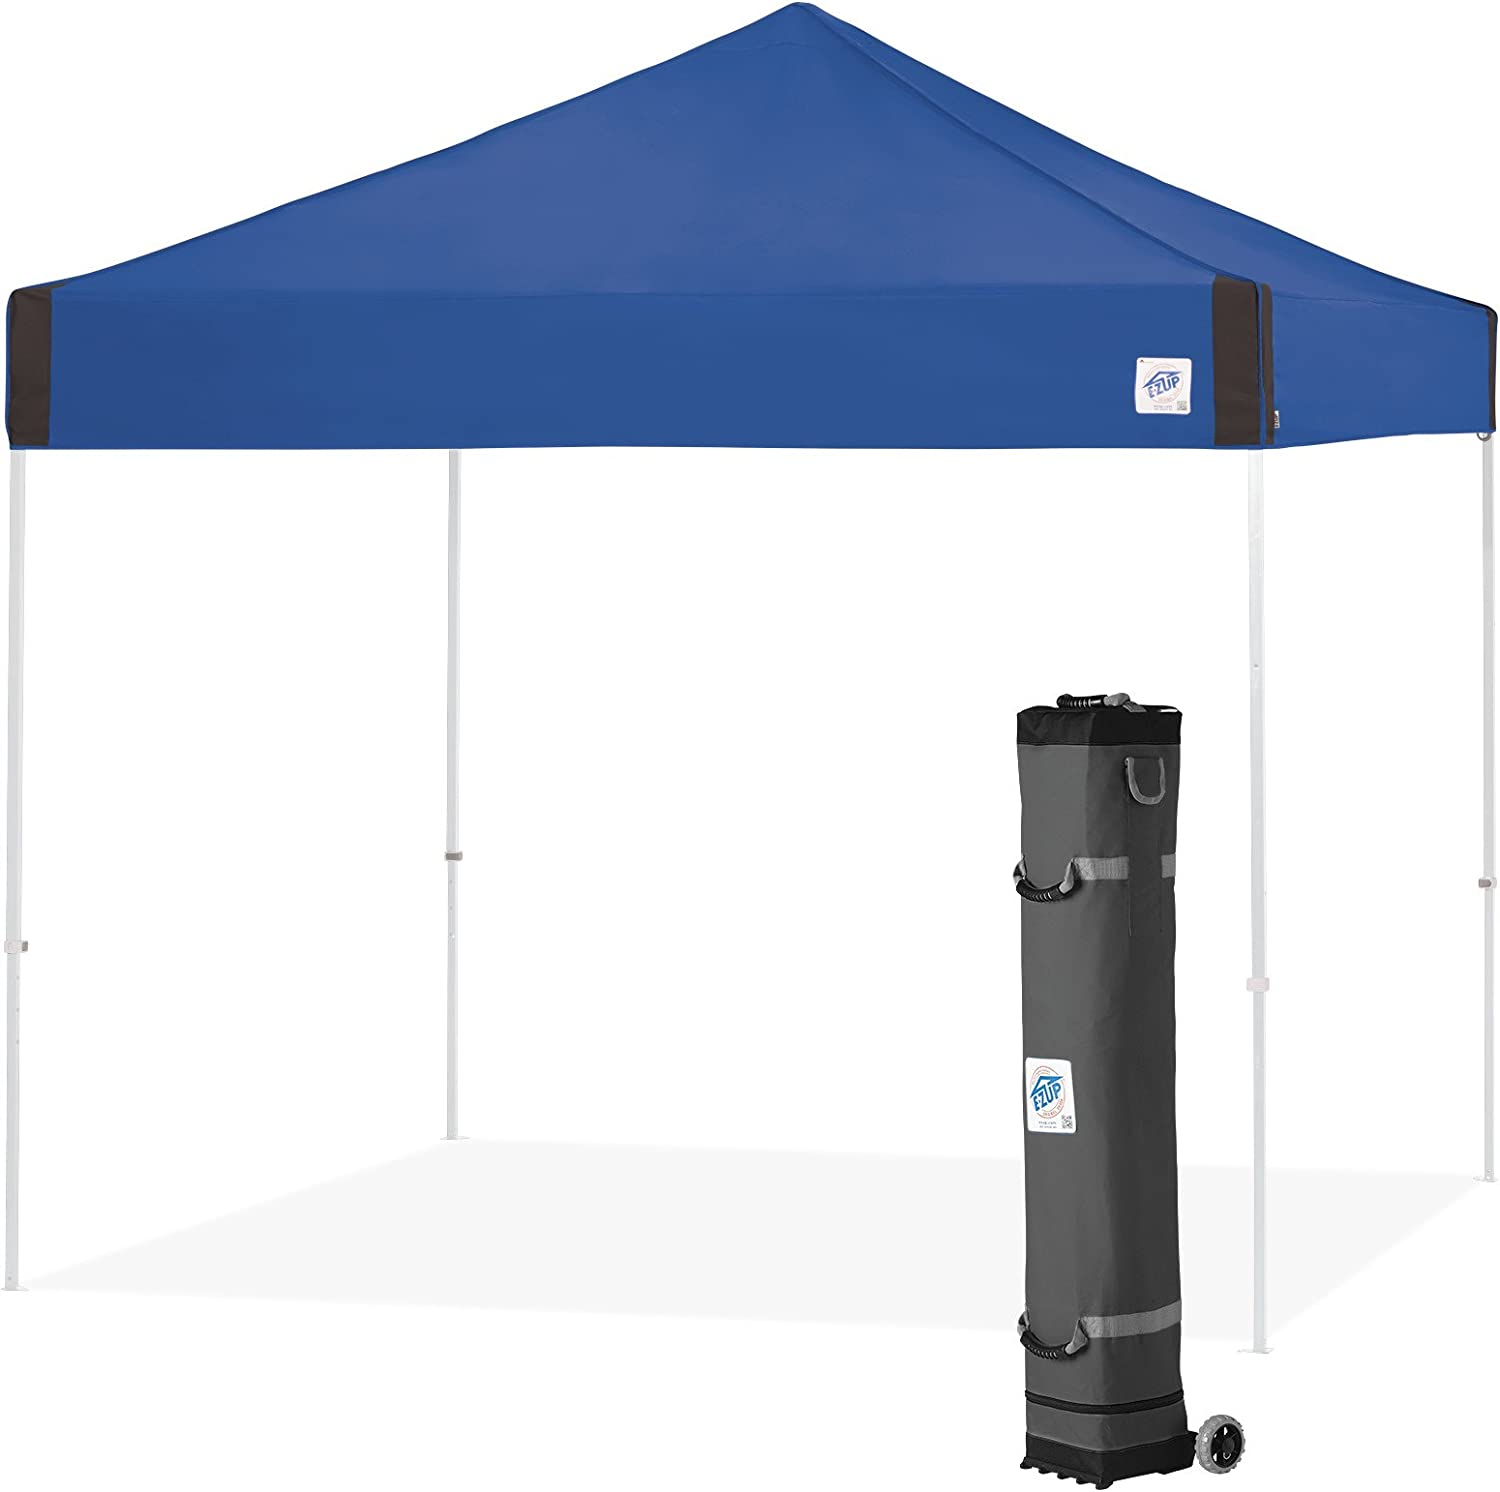 E-Z UP PR3WH10RB Shelter 10 , Cathedral Ceiling for Increased Headroom Portable Instant Canopy Popup Tent, Royal Blue_Pyramid 10